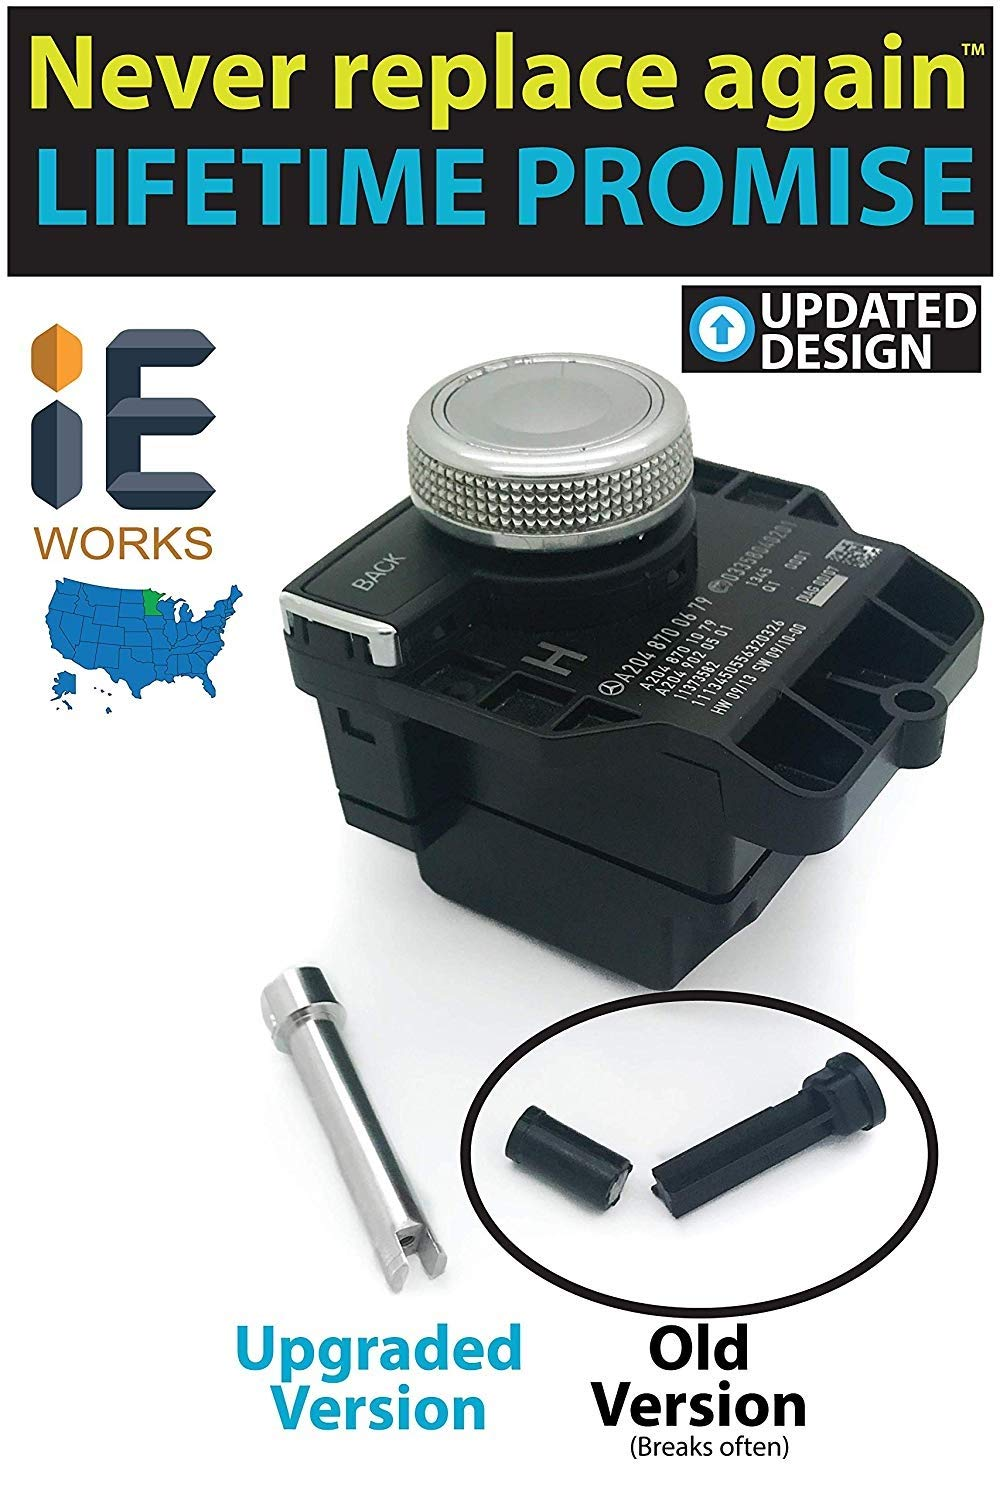 Mercedes-Benz COMAND Scrolling Issue Repair (Shaft Only) Replacement Shaft Fixes Console Controller Knob Radio GPS Navigation Multi-Switch Push-Button Assembly (2008-2017)